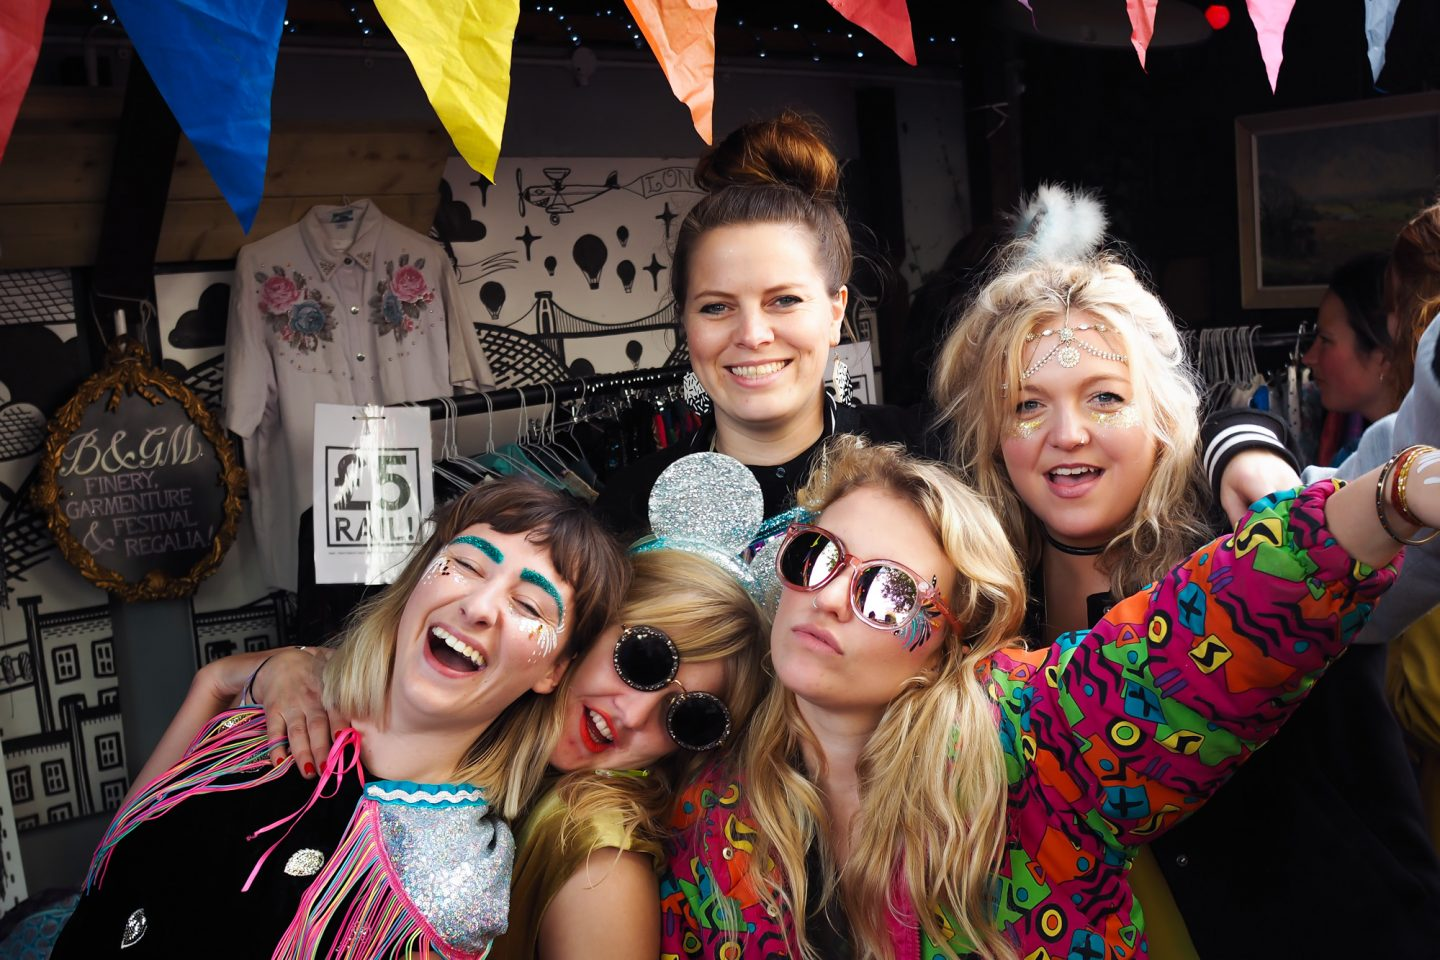 Bristol festival wear babes at Bzzaar